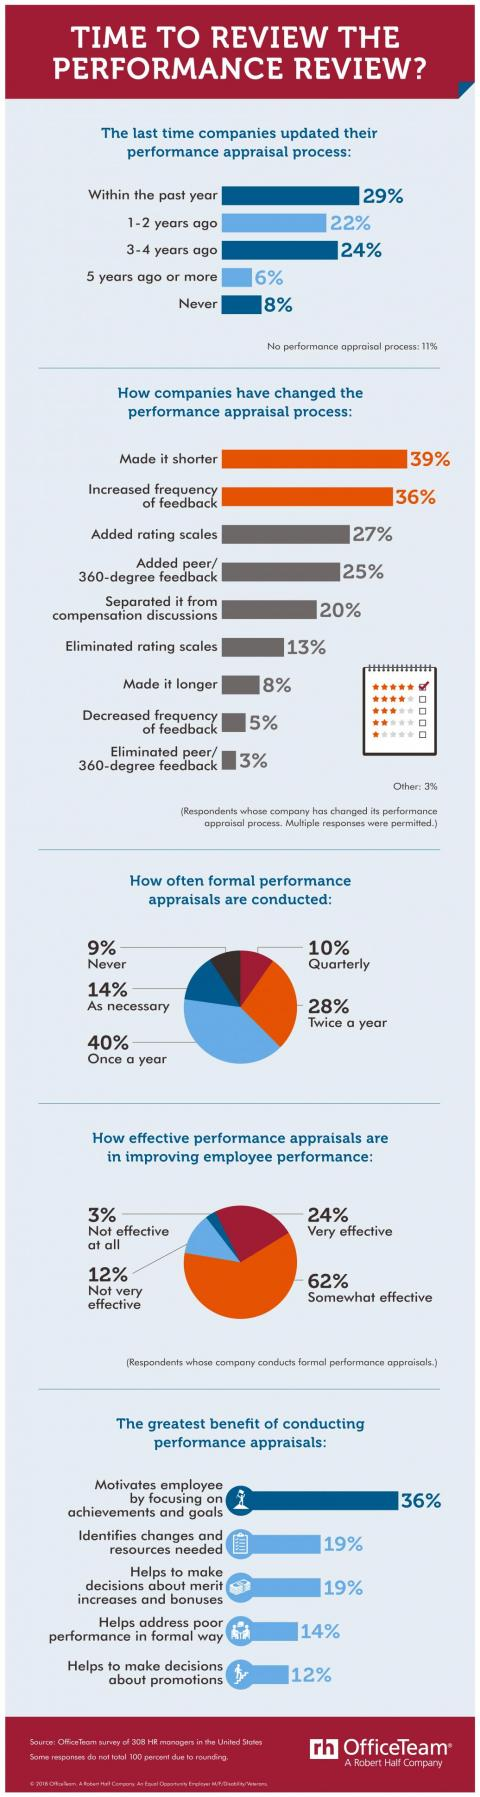 15 Performance Review Tips to Usher in a New Era — Infographic with title: Time to Review the Performance Review?